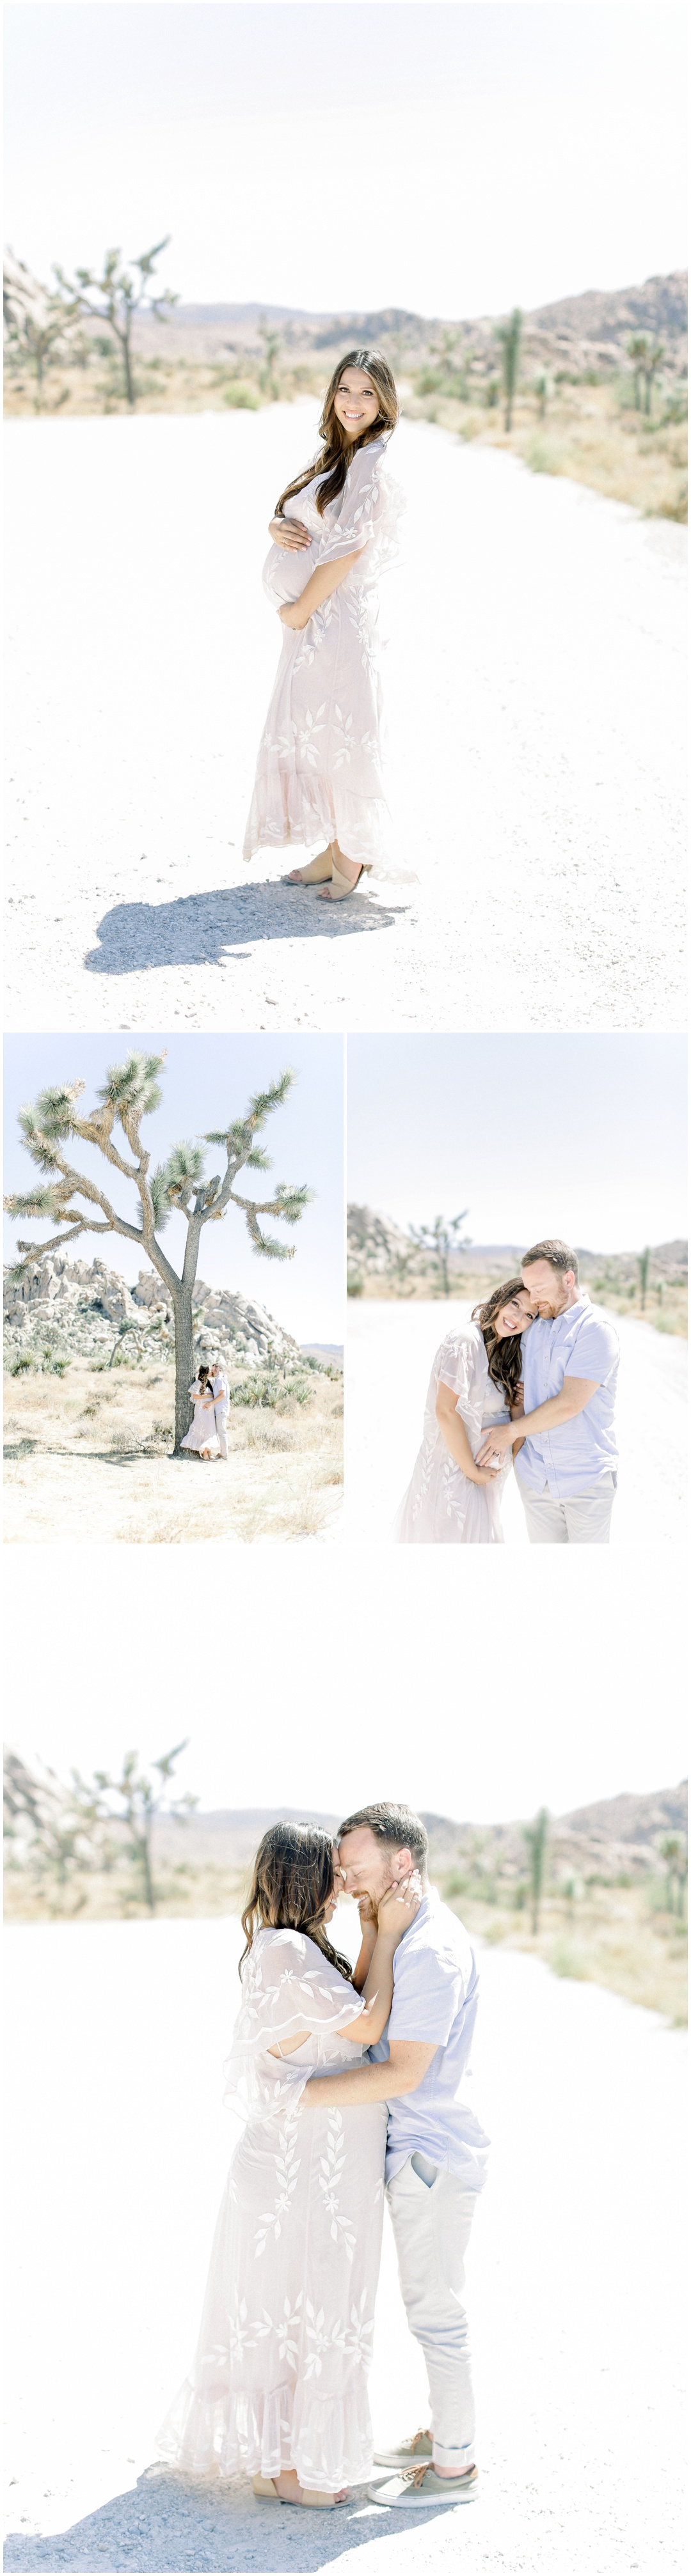 Newport_Beach_Joshua_Tree_Maternity_Photos_Session_Leliani_Hailey_Shane_Hailey_Maternity_Session__4263.jpg